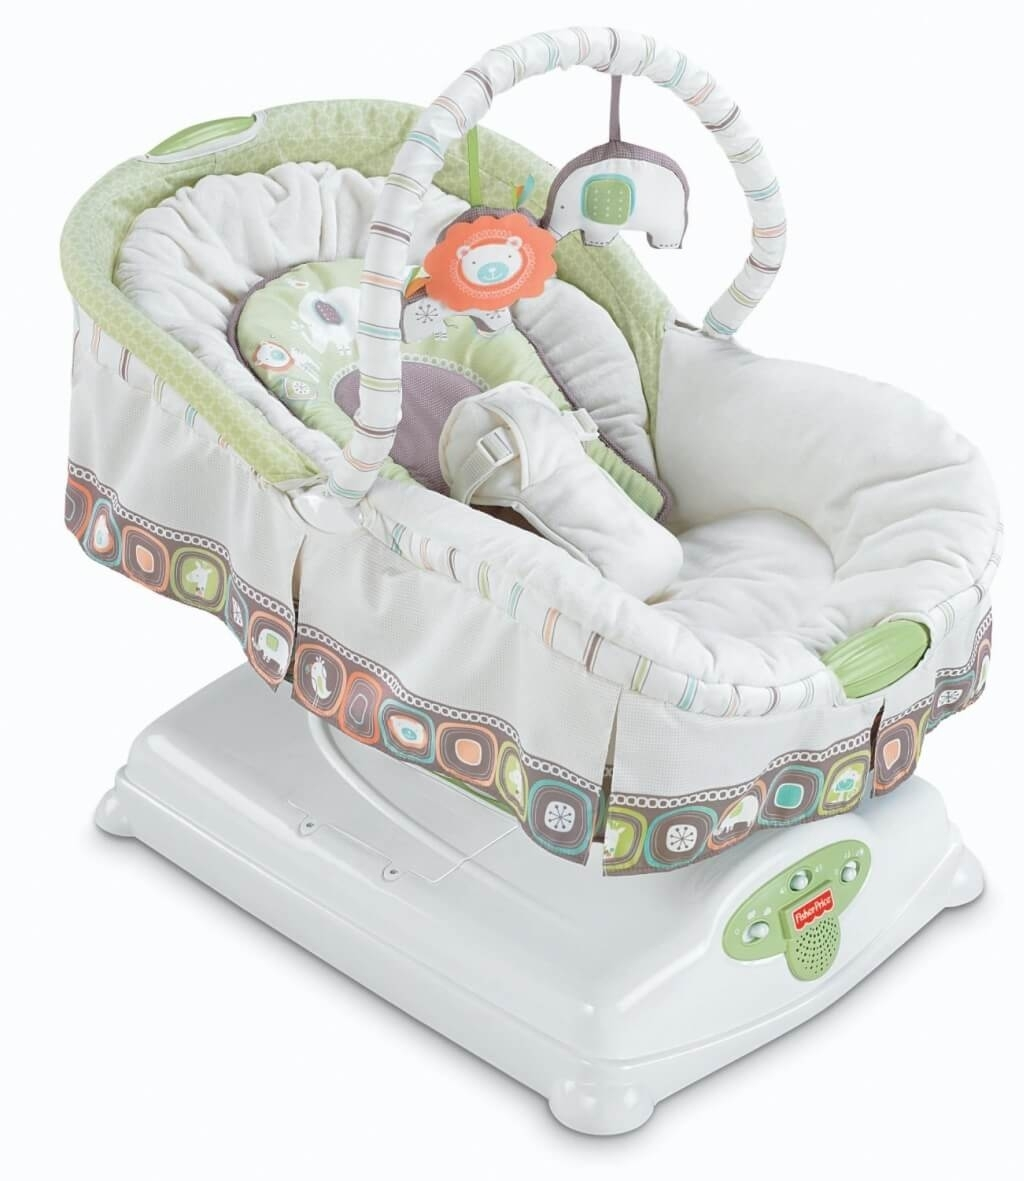 Furniture: Luxury Baby Rocking Chair With Bouncer And White Baby Intended For Rocking Chairs For Babies (#11 of 15)